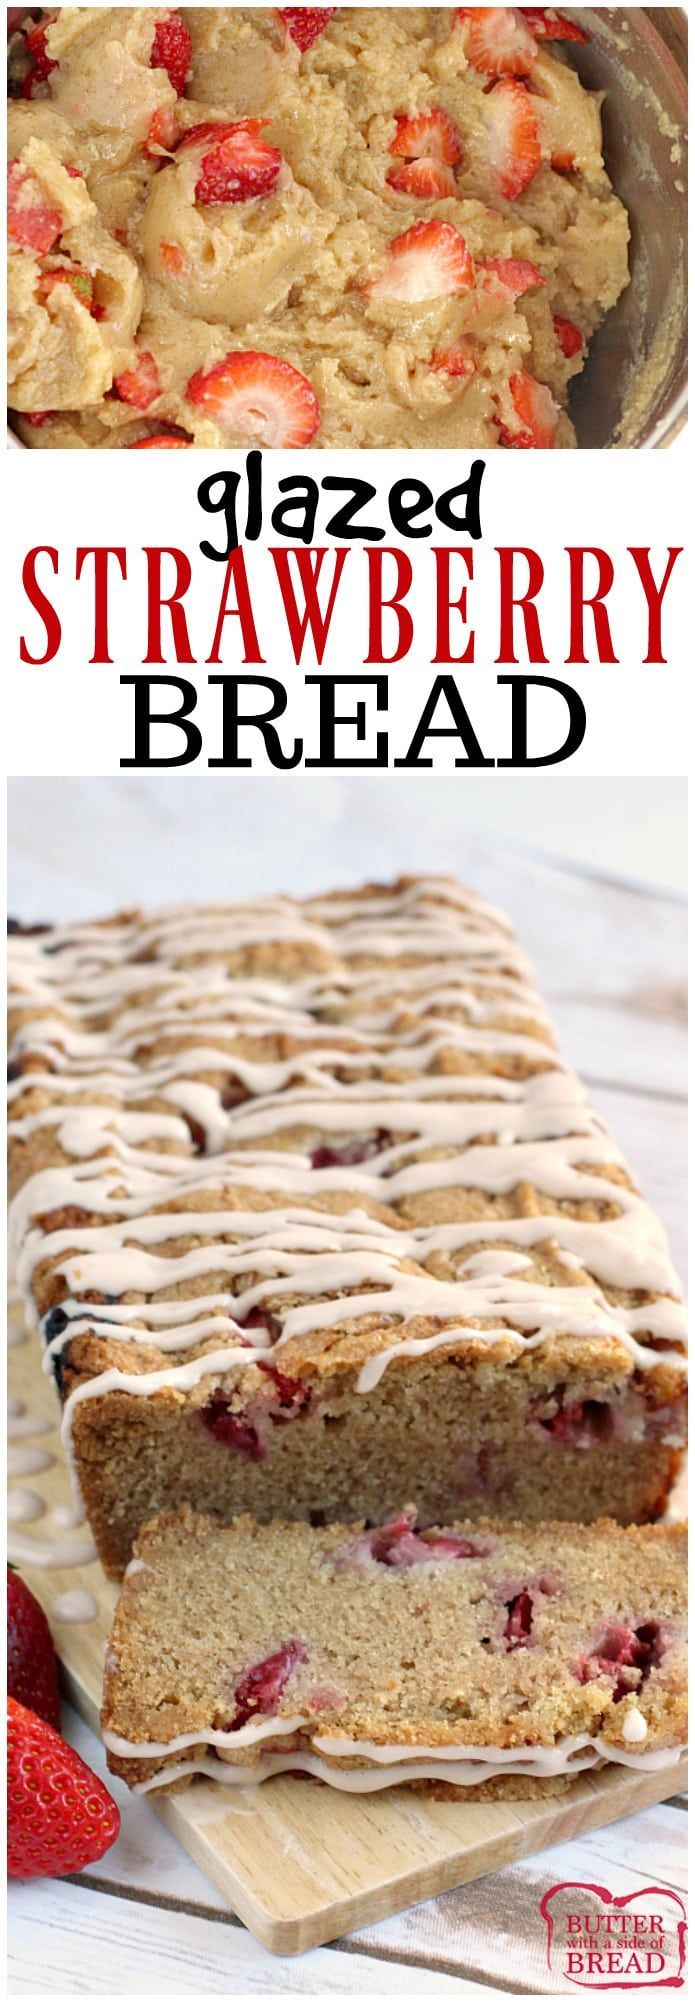 Glazed Strawberry Bread is a delicious, moist quick bread that is made with fresh strawberries and a touch of cinnamon too! The frosting is made with strawberry cream cheese for a little bit of extra strawberry flavor! #bread #quick #strawberry #baking #recipe Butter With A Side of Bread